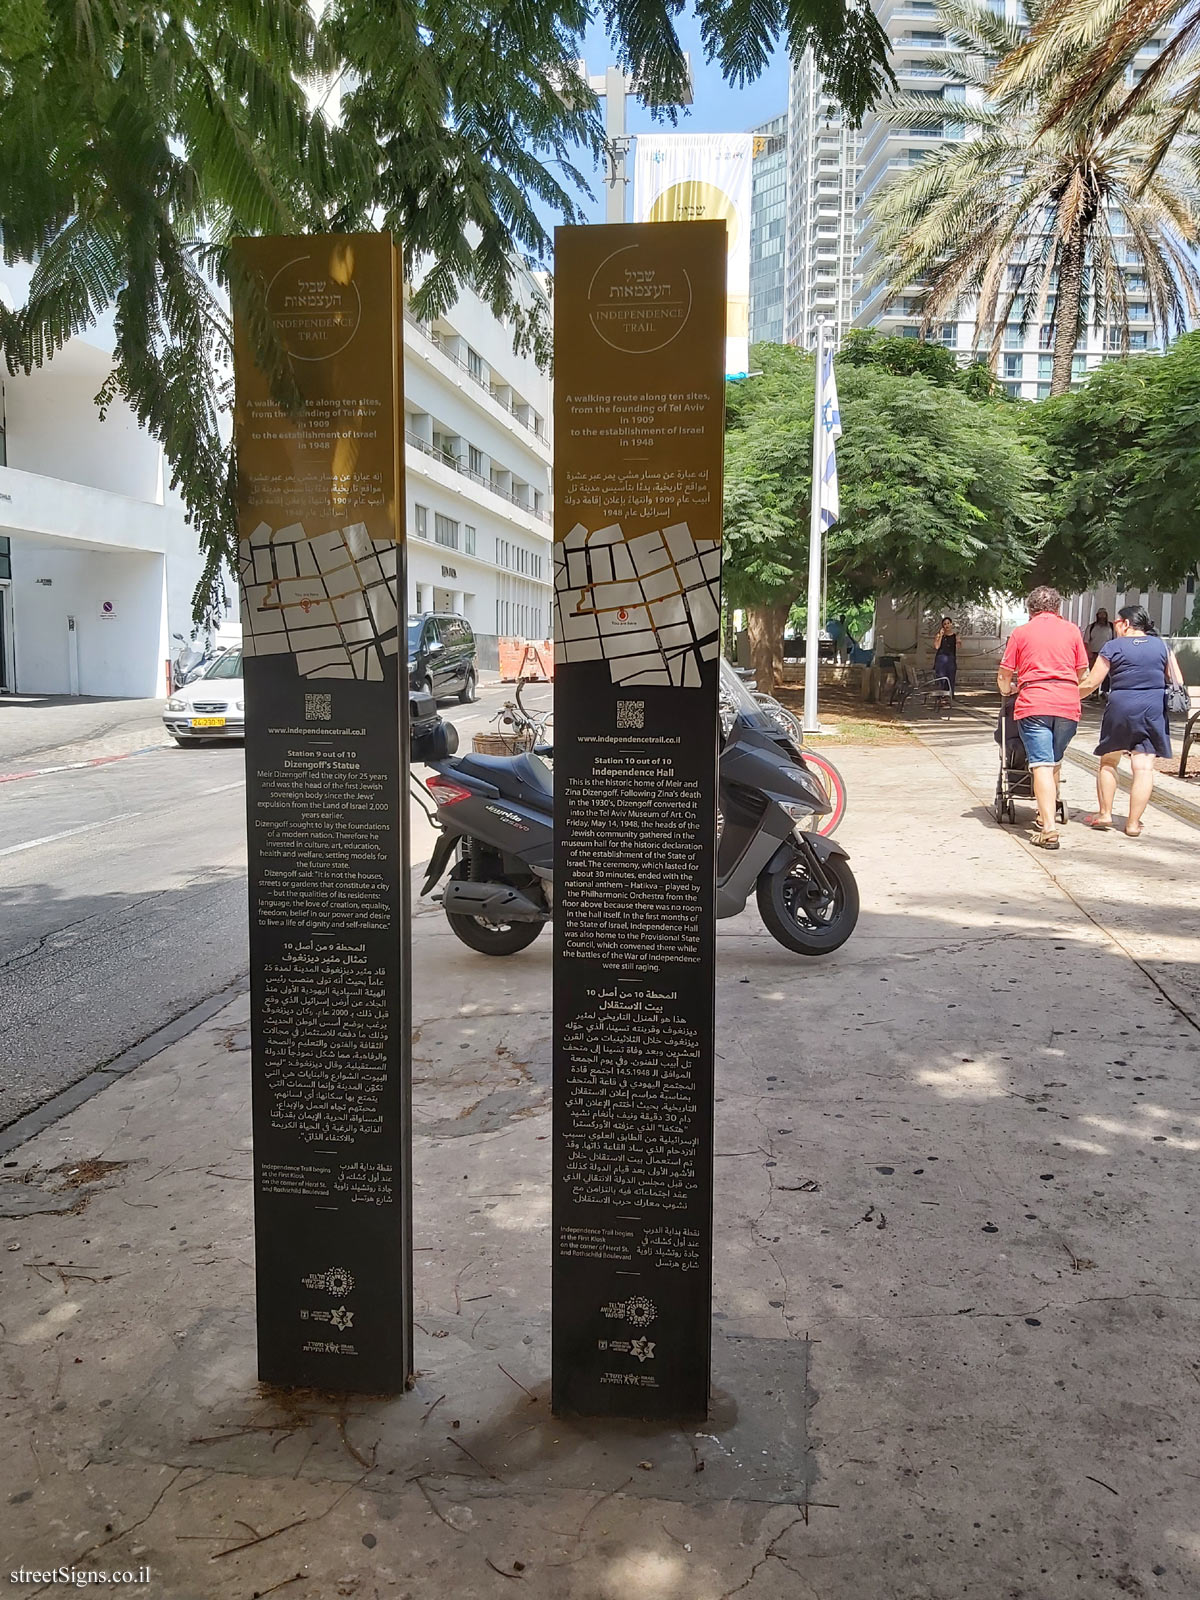 Tel Aviv - Independence Trail - Statue of Meir Dizengoff - Information (English and Arabic)